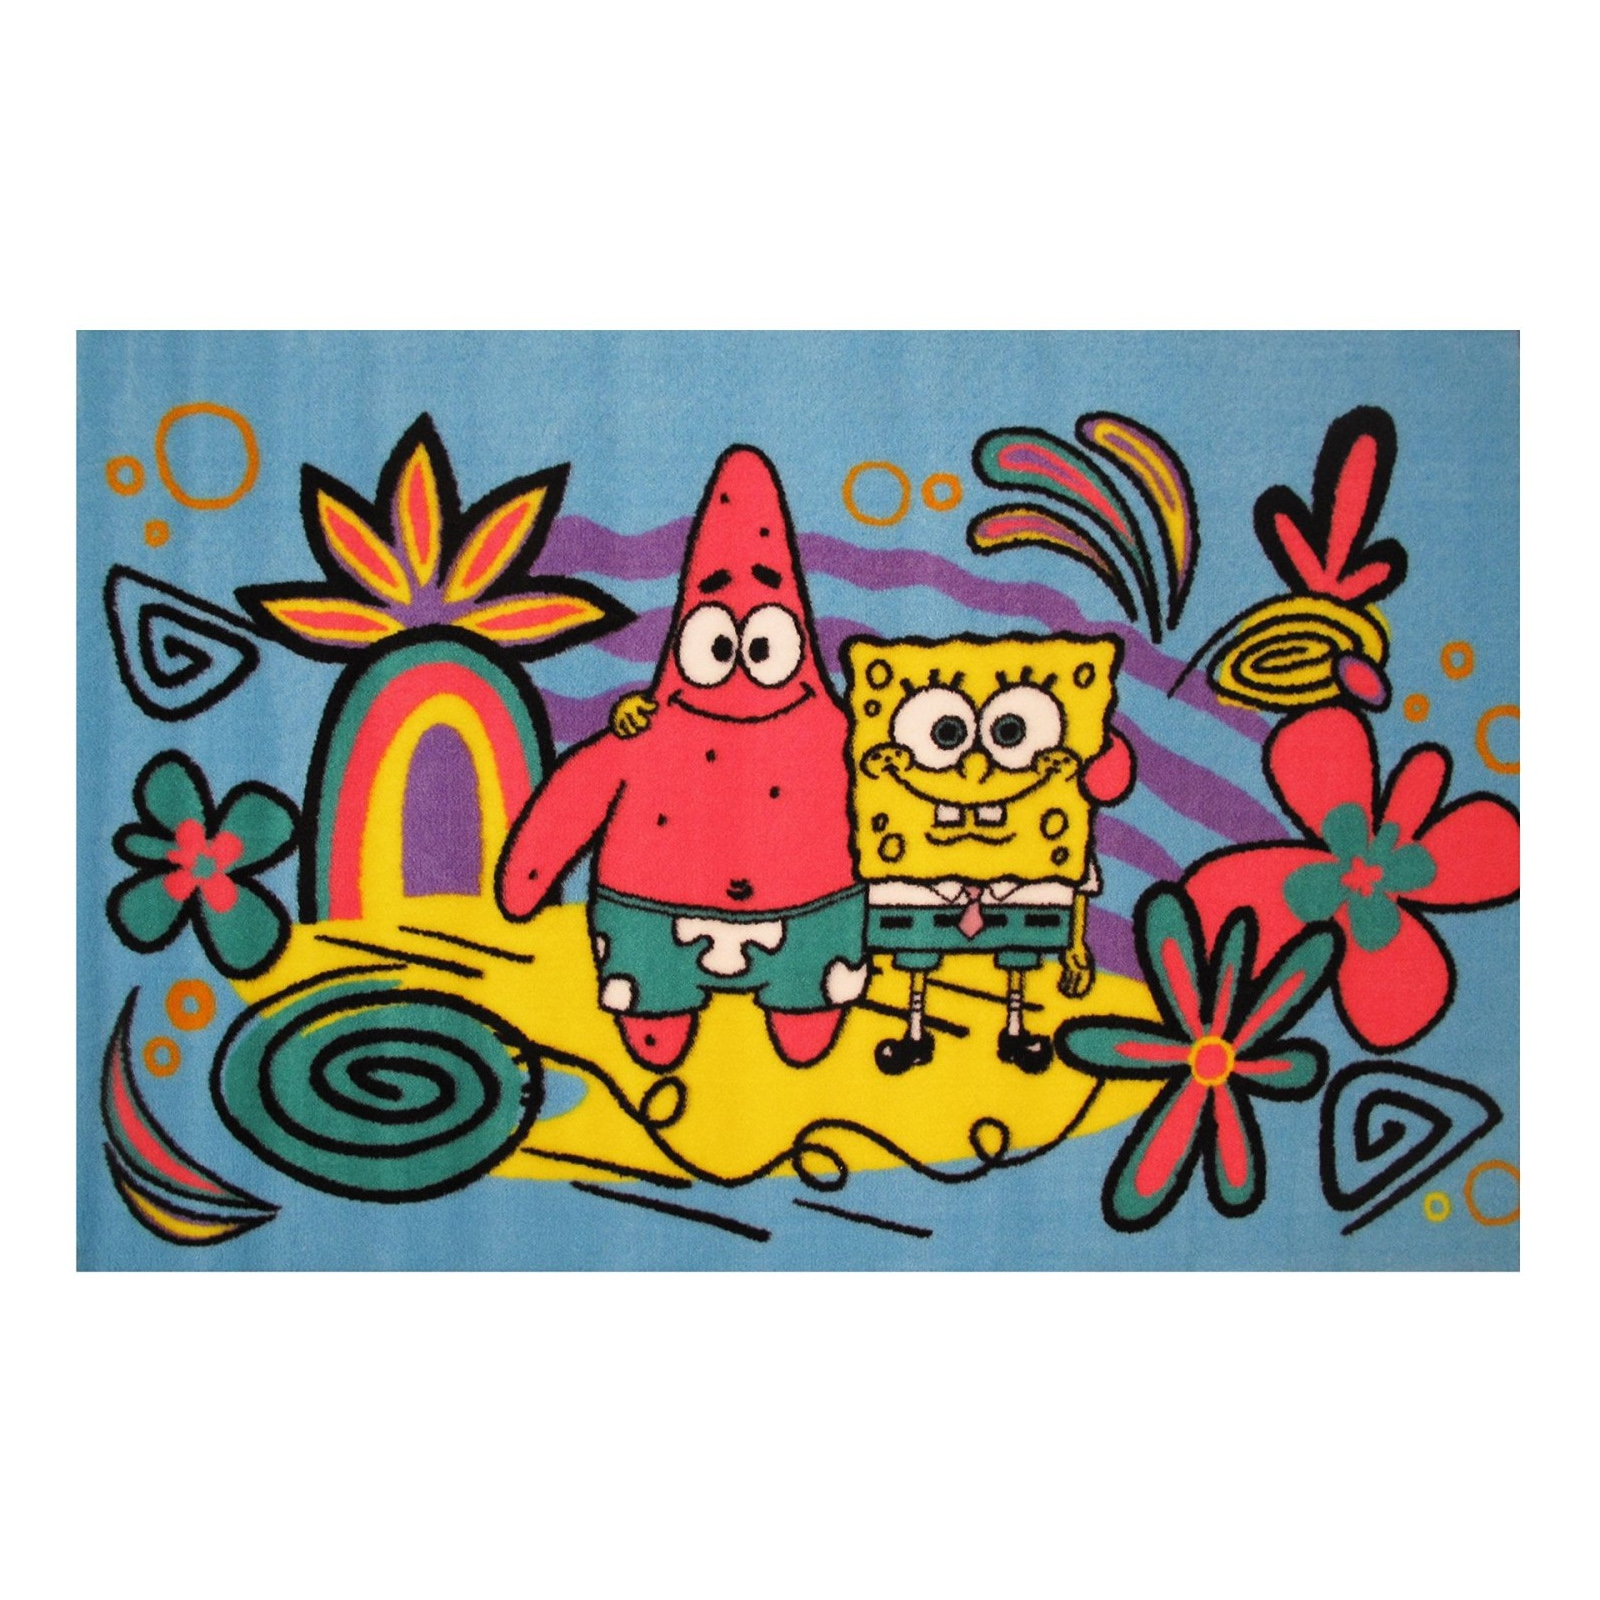 "Fun Rugs Spongebob Square Pants and Patrick 19"" x 29"" Play Room Area Rug"